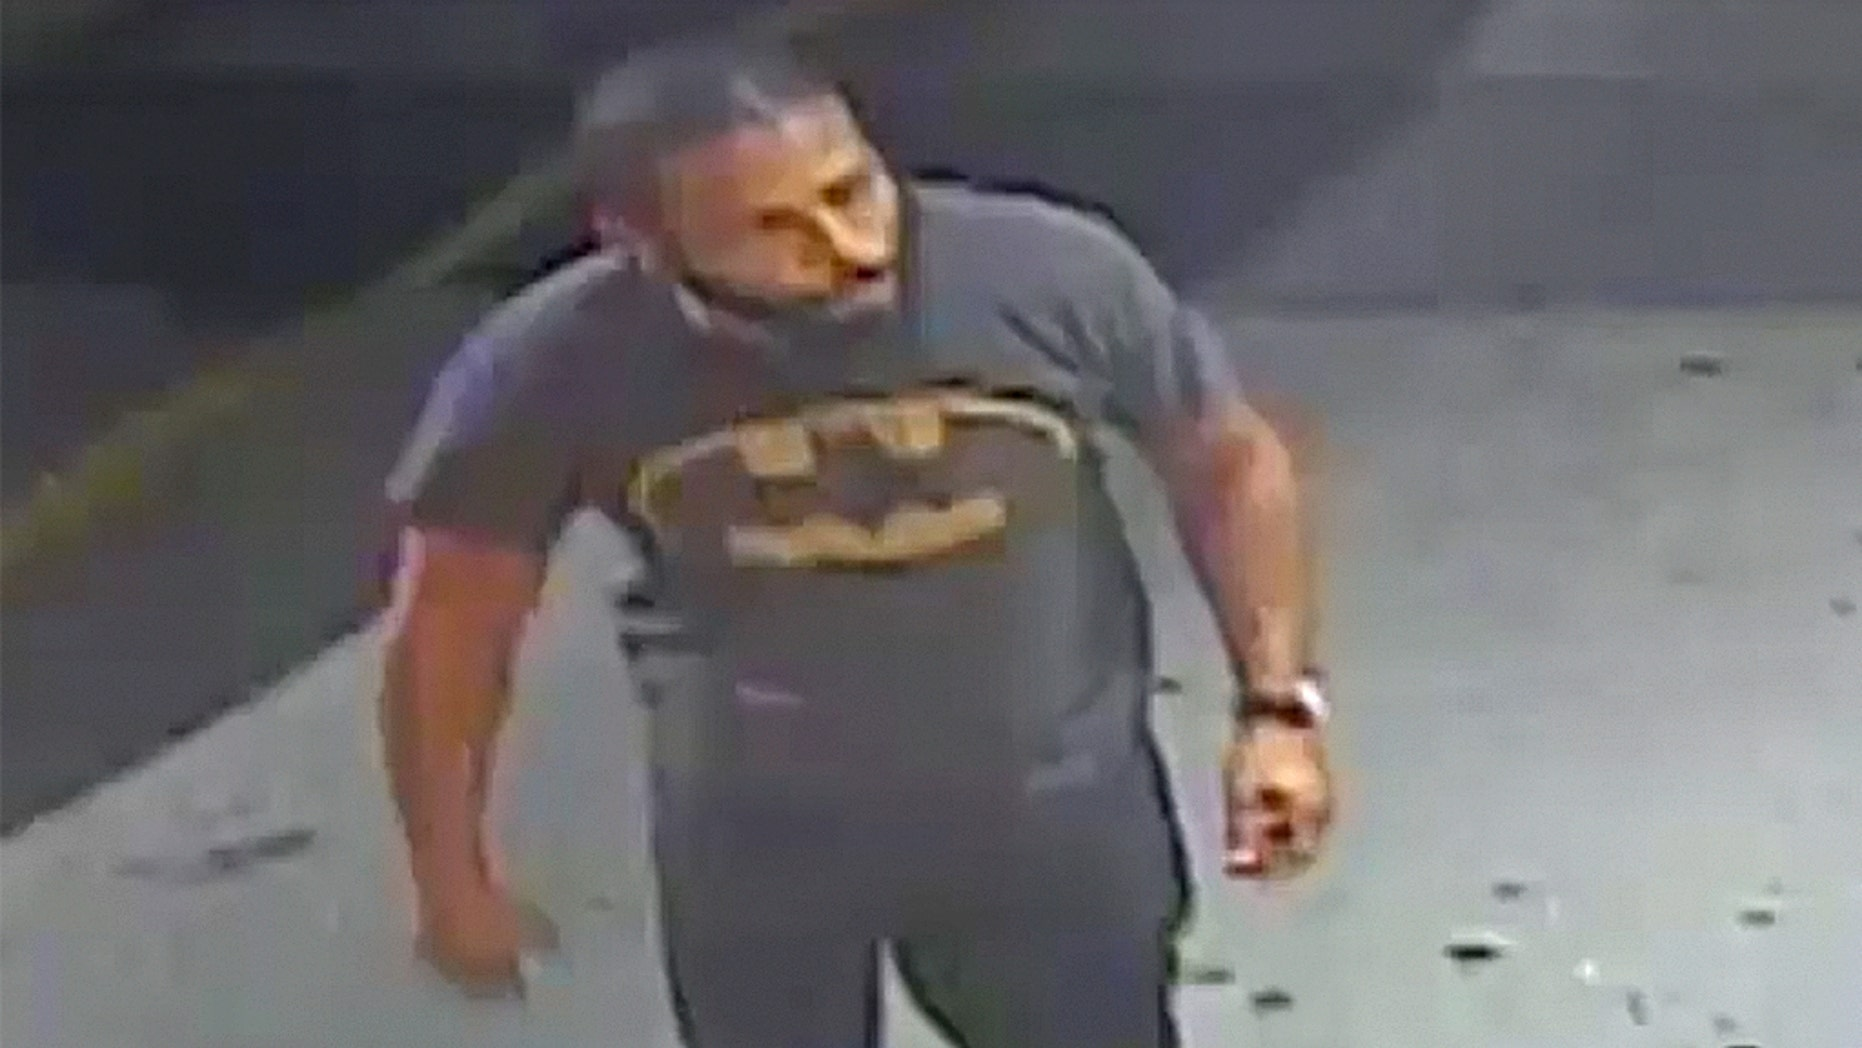 Police are still searching for the suspect who caused a bizarre commotion.